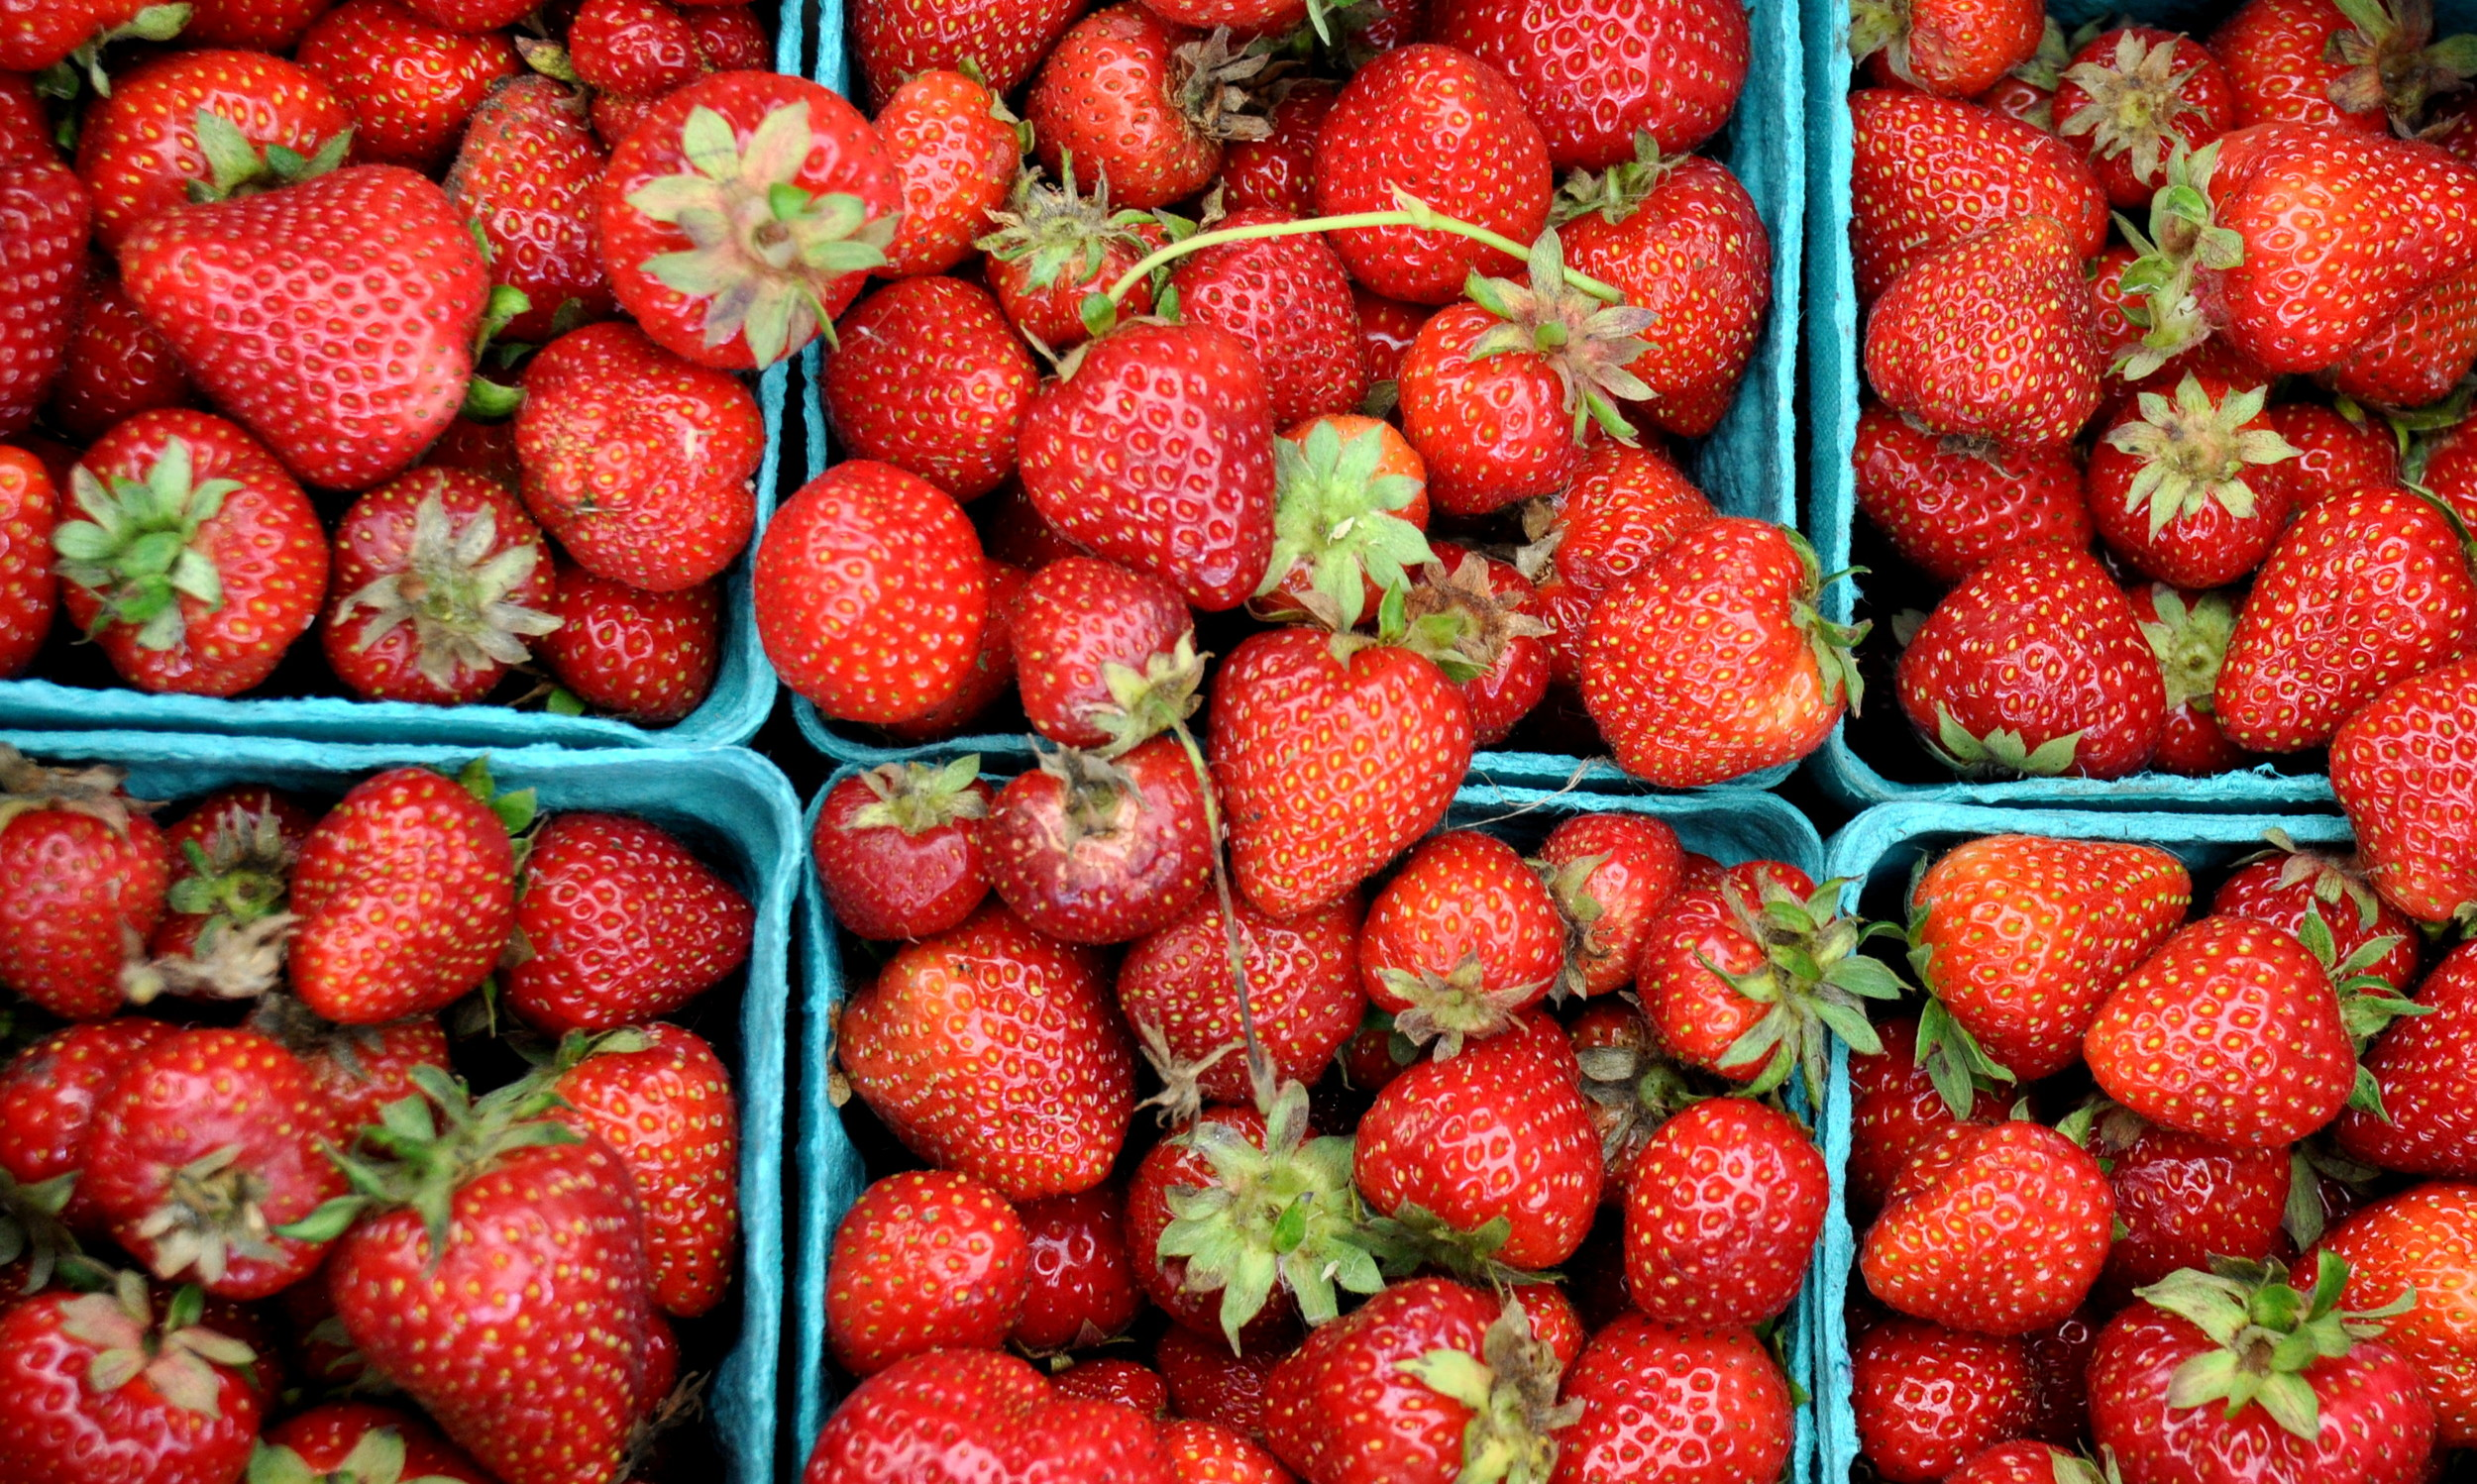 Organic strawberries from Stoney Plains Organic Farm. Photo copyright 2014 by Zachary D. Lyons.